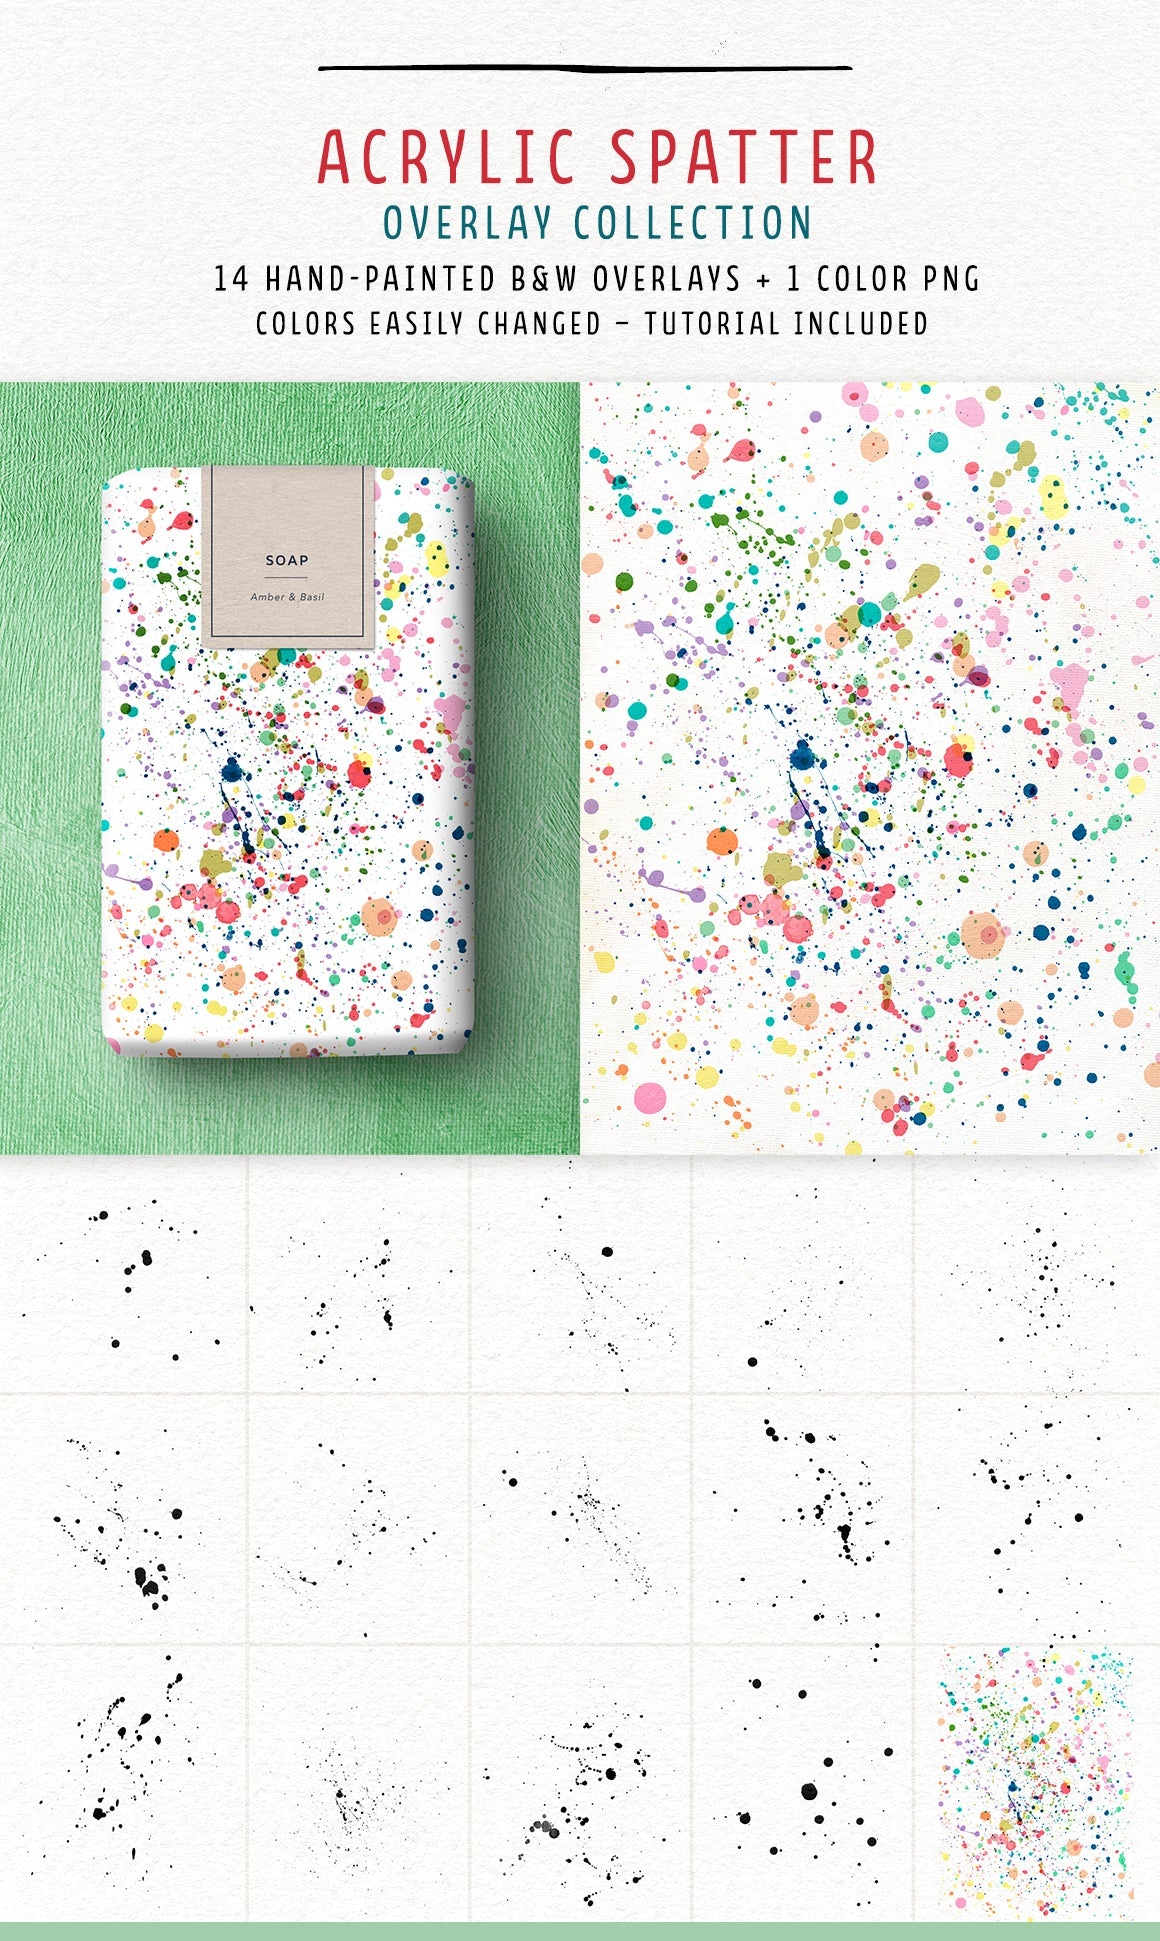 Acrylic spatter overlays from the Complete Inspirational Textures and Elements Collection.